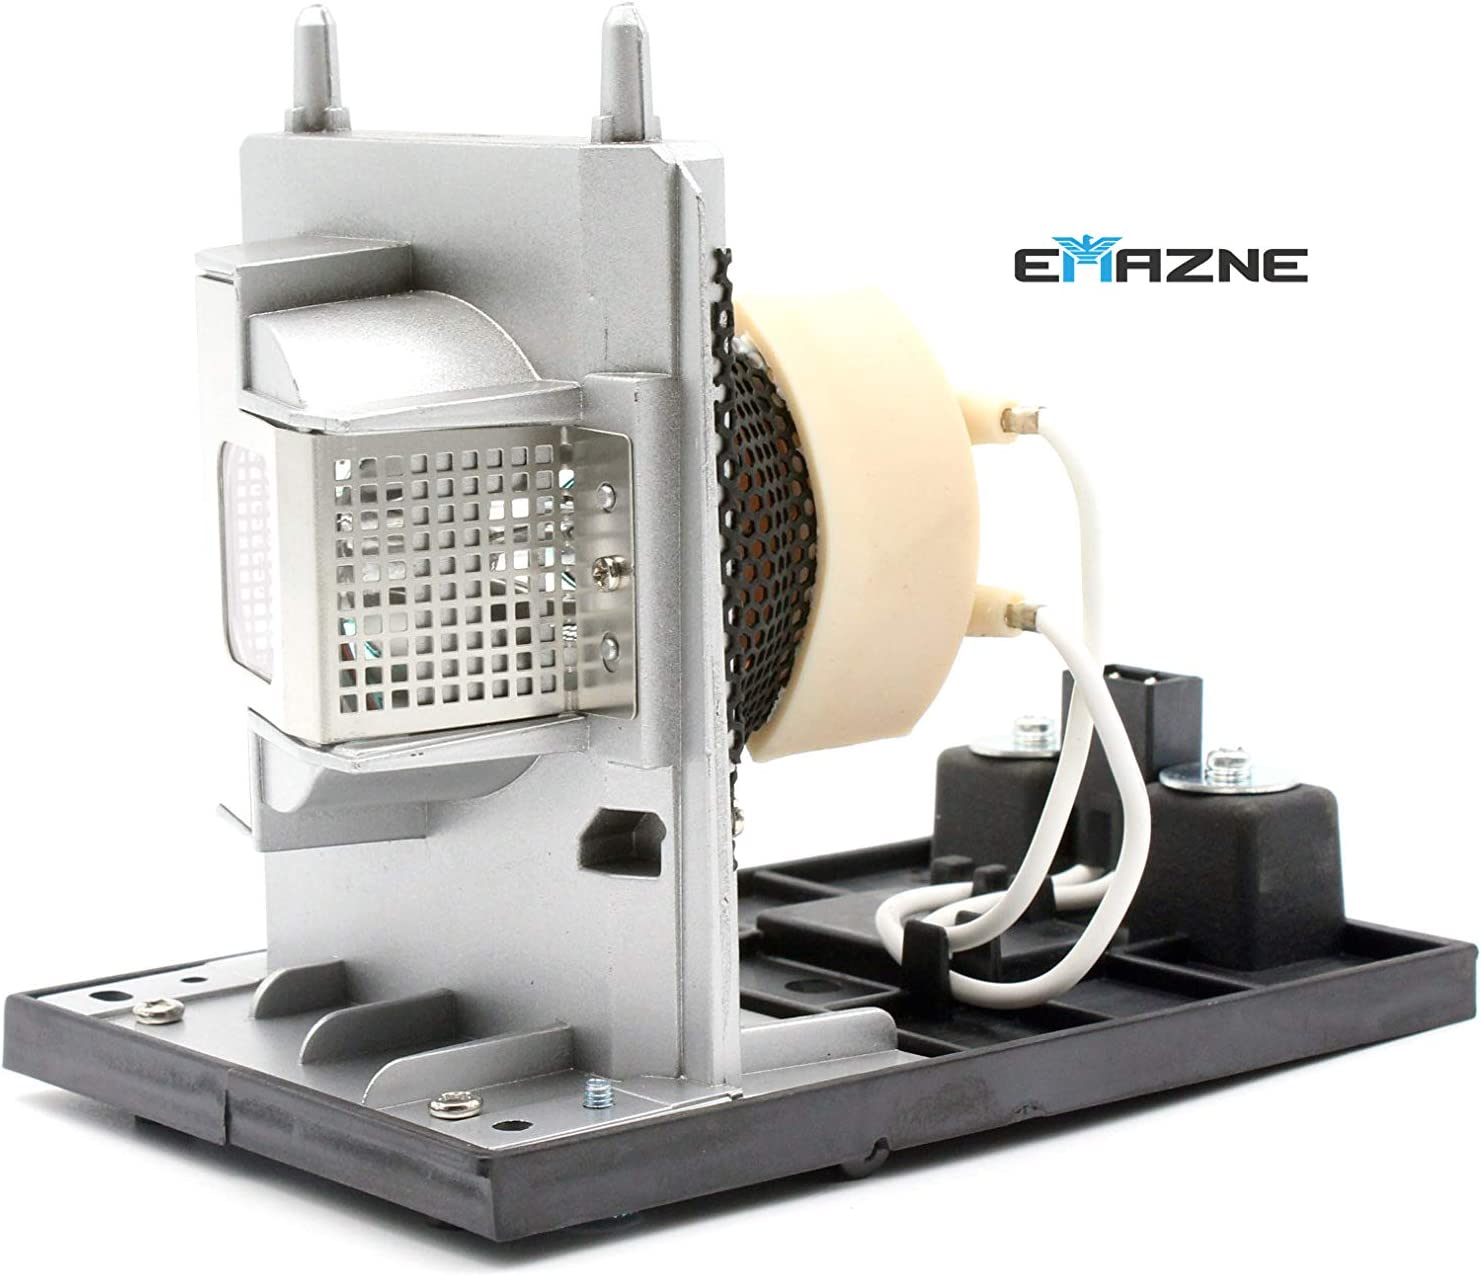 Emazne 20-01175-20 Professional Projector Replacement Compatible Lamp with Housing Work for SmartBoard: 665ix SmartBoard: 685ix SmartBoard: 885ix SmartBoard: UX60 SmartBoard: X885ix